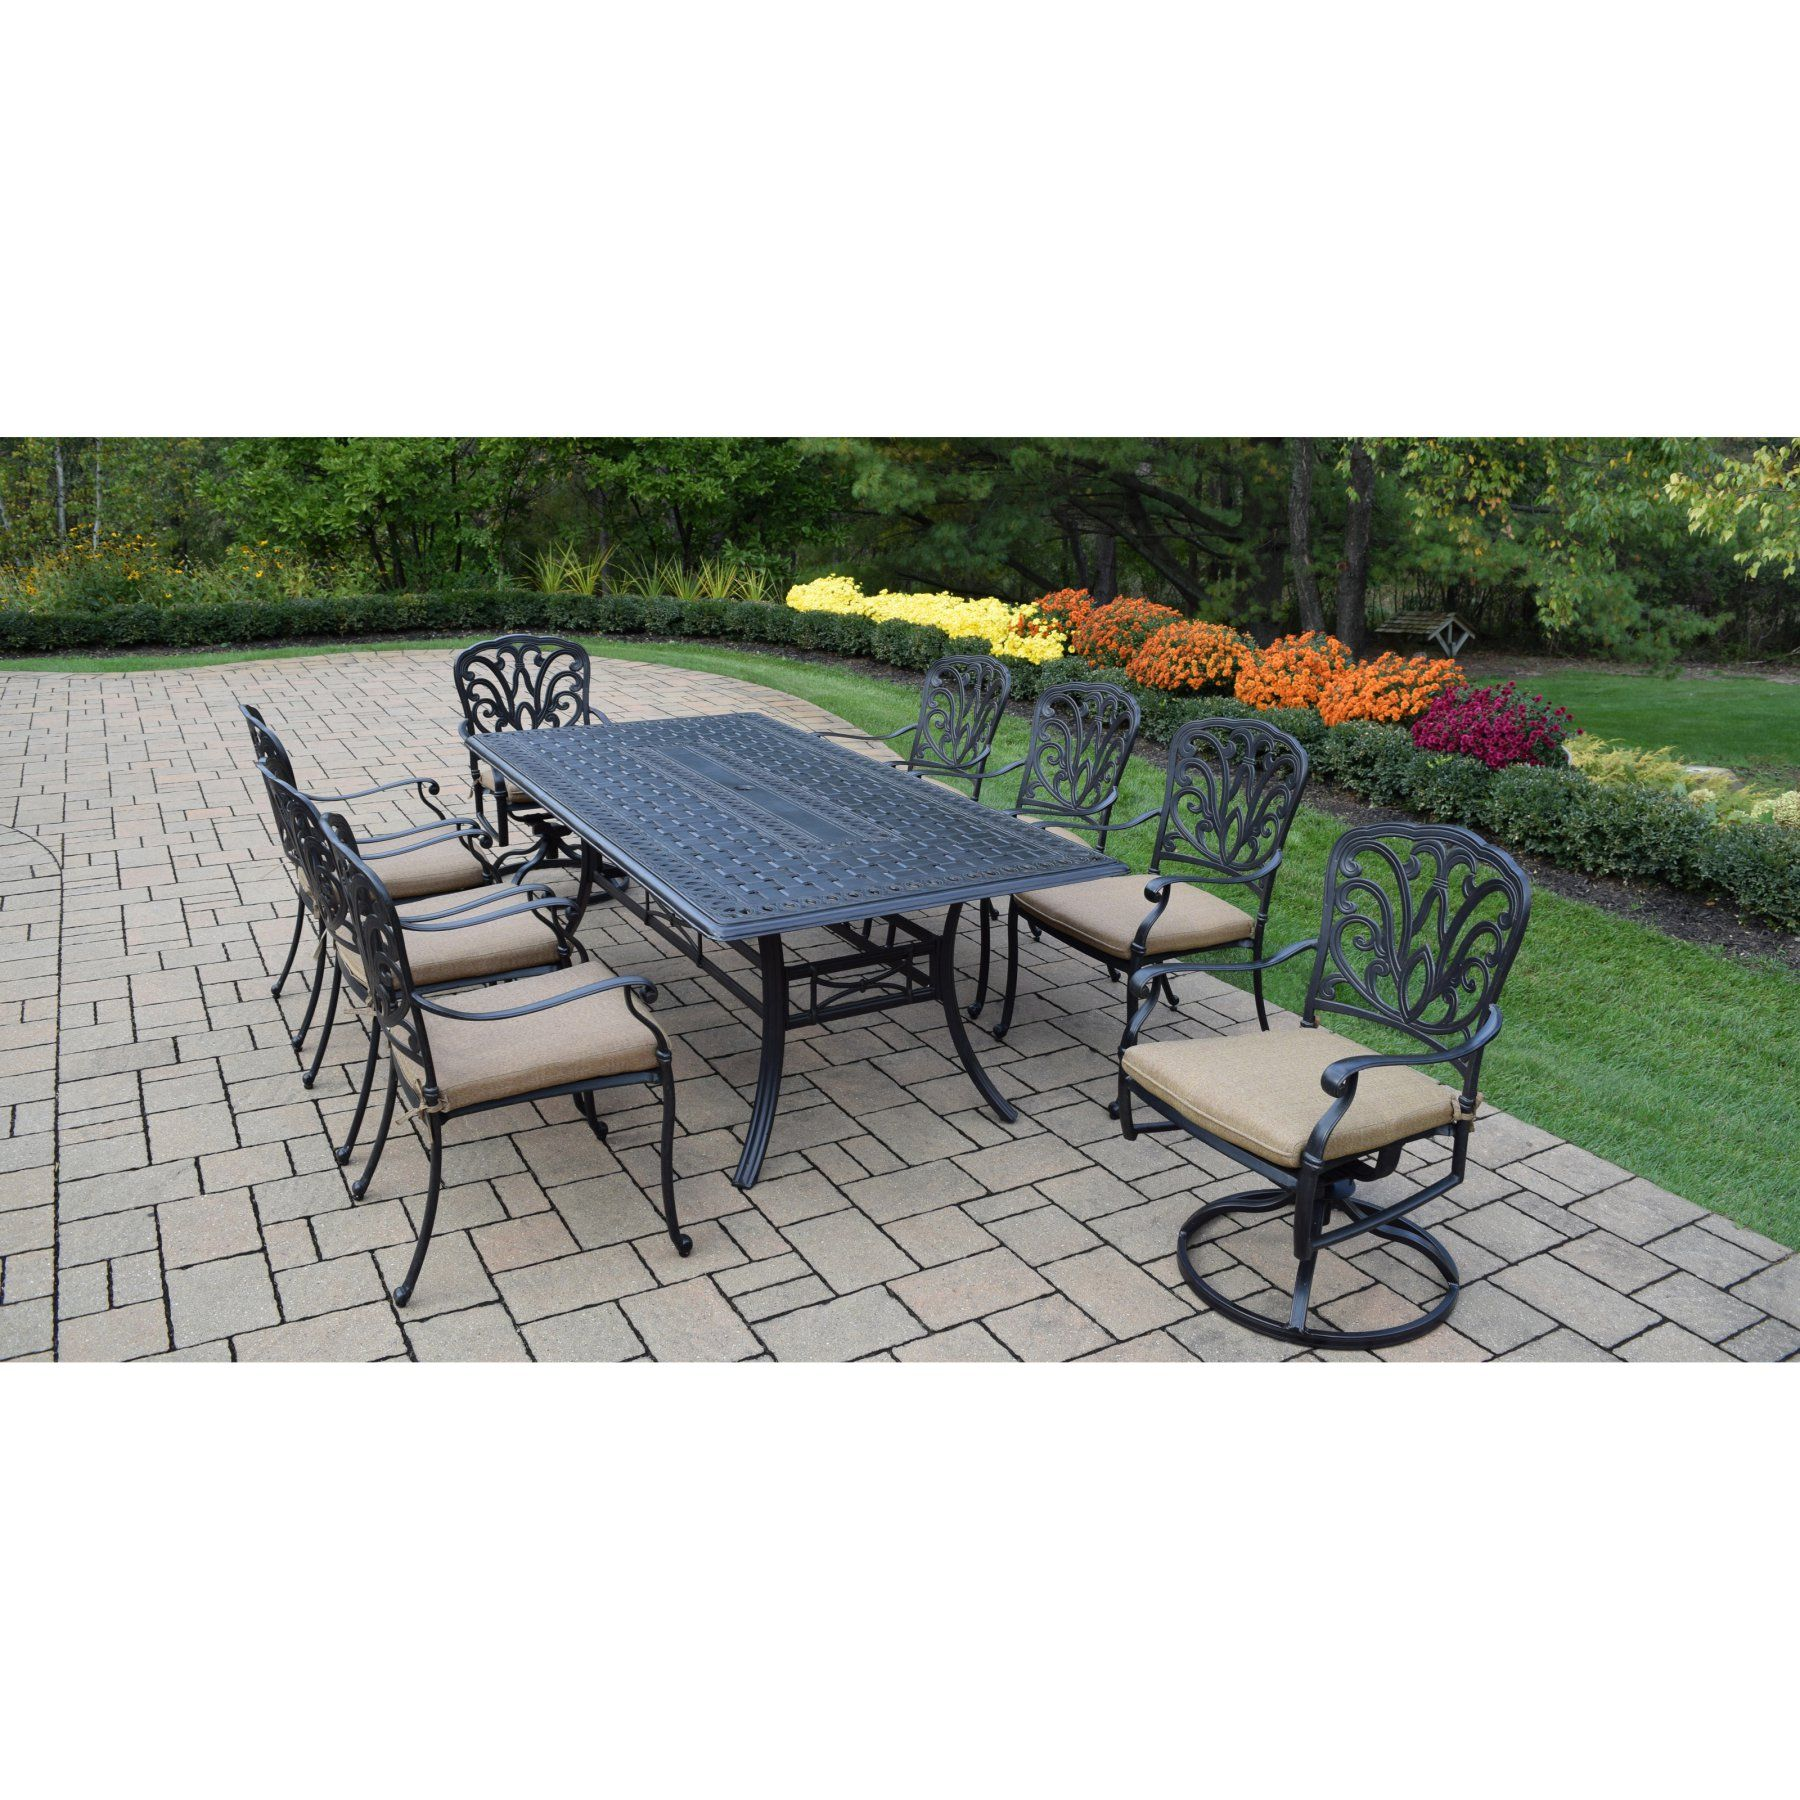 ab swivel chair george jones rocking outdoor oakland living hampton 9 piece rectangular patio dining set with stackable and chairs